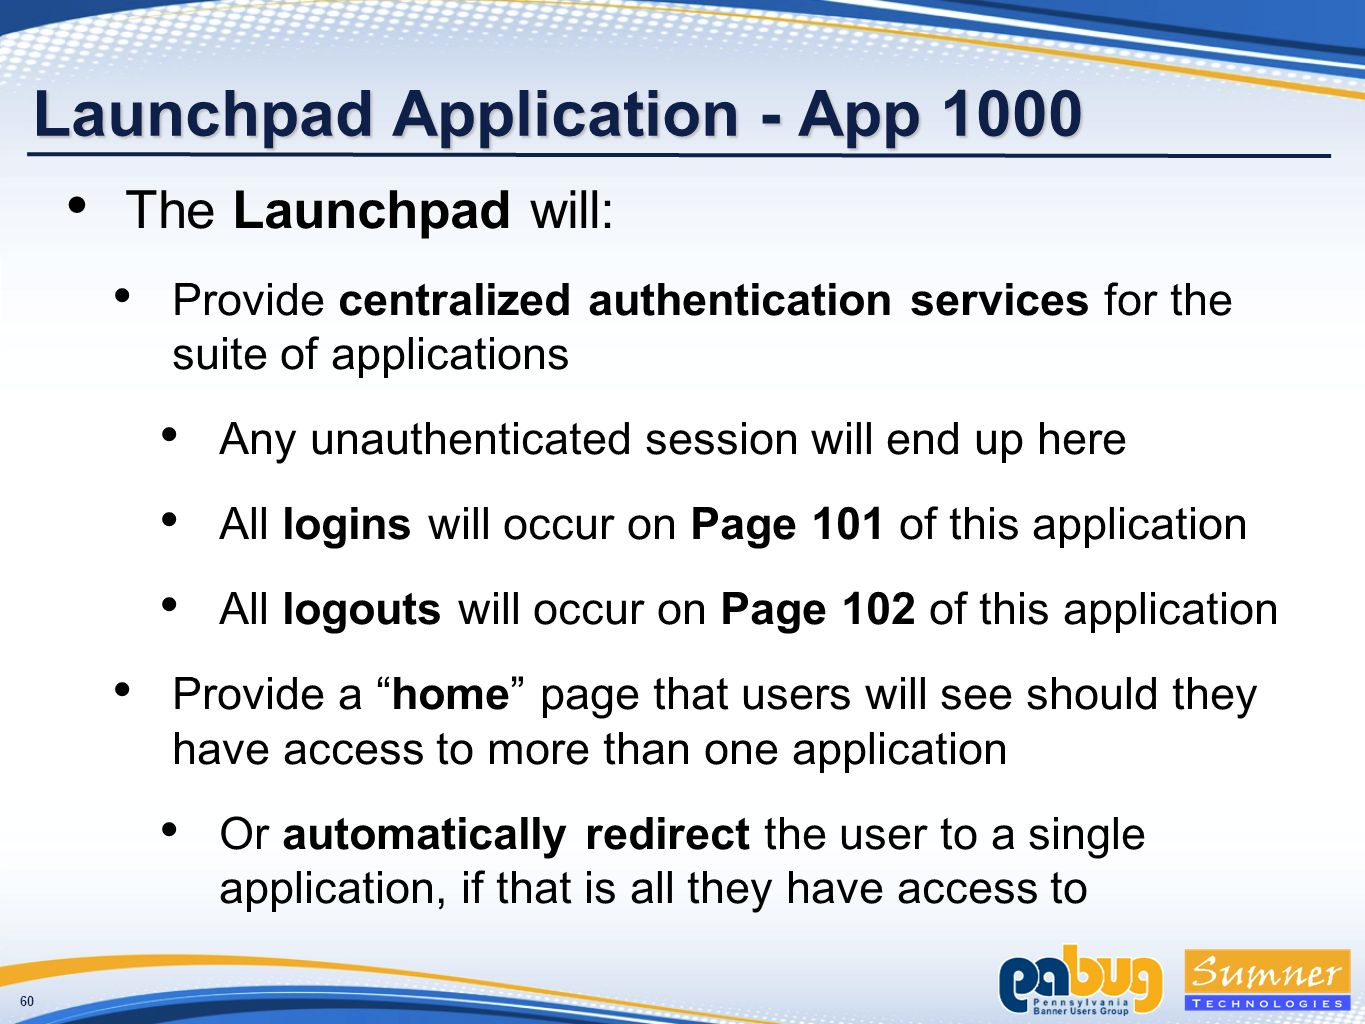 60 Launchpad Application - App 1000 The Launchpad will: Provide centralized authentication services for the suite of applications Any unauthenticated session will end up here All logins will occur on Page 101 of this application All logouts will occur on Page 102 of this application Provide a home page that users will see should they have access to more than one application Or automatically redirect the user to a single application, if that is all they have access to